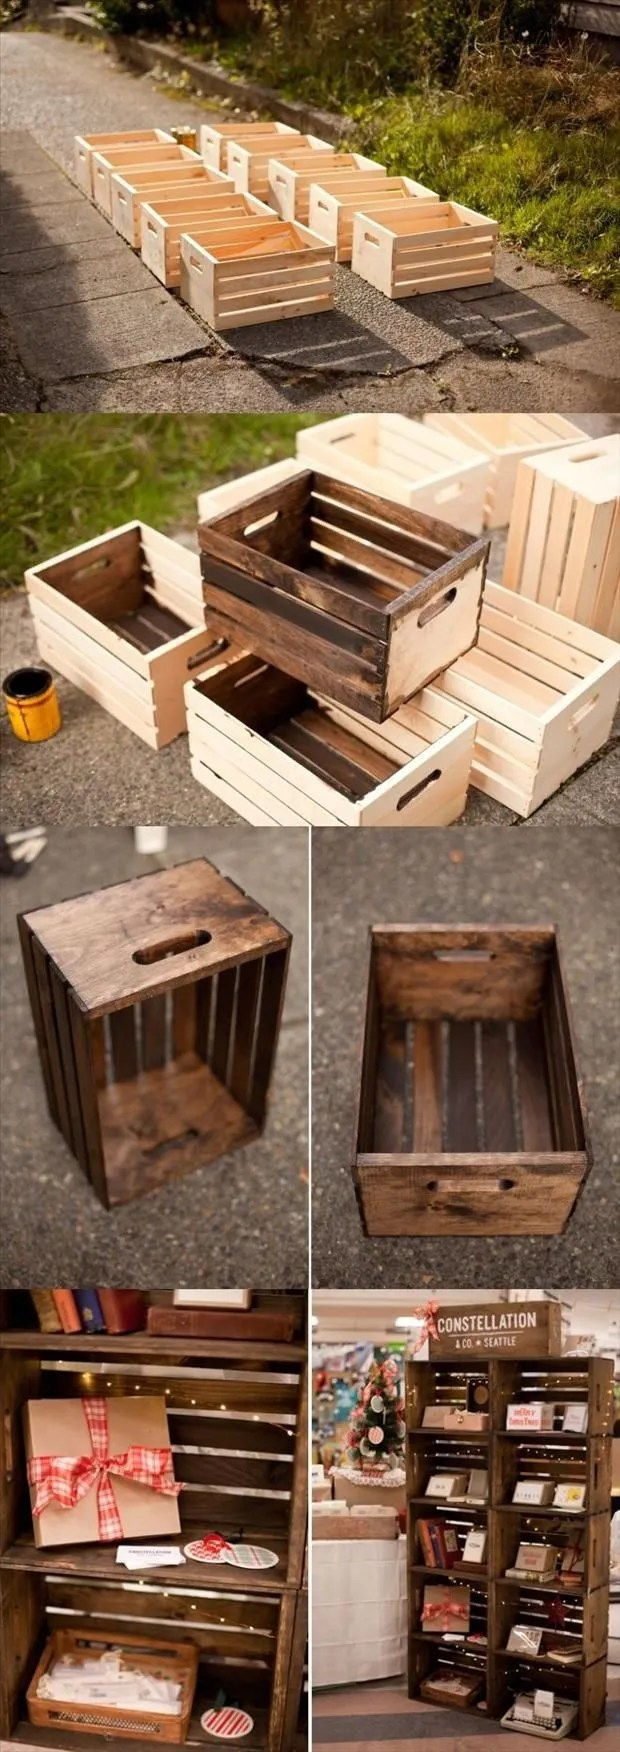 29 ways to be sustainable by decorating with wooden crates for Apple crate furniture